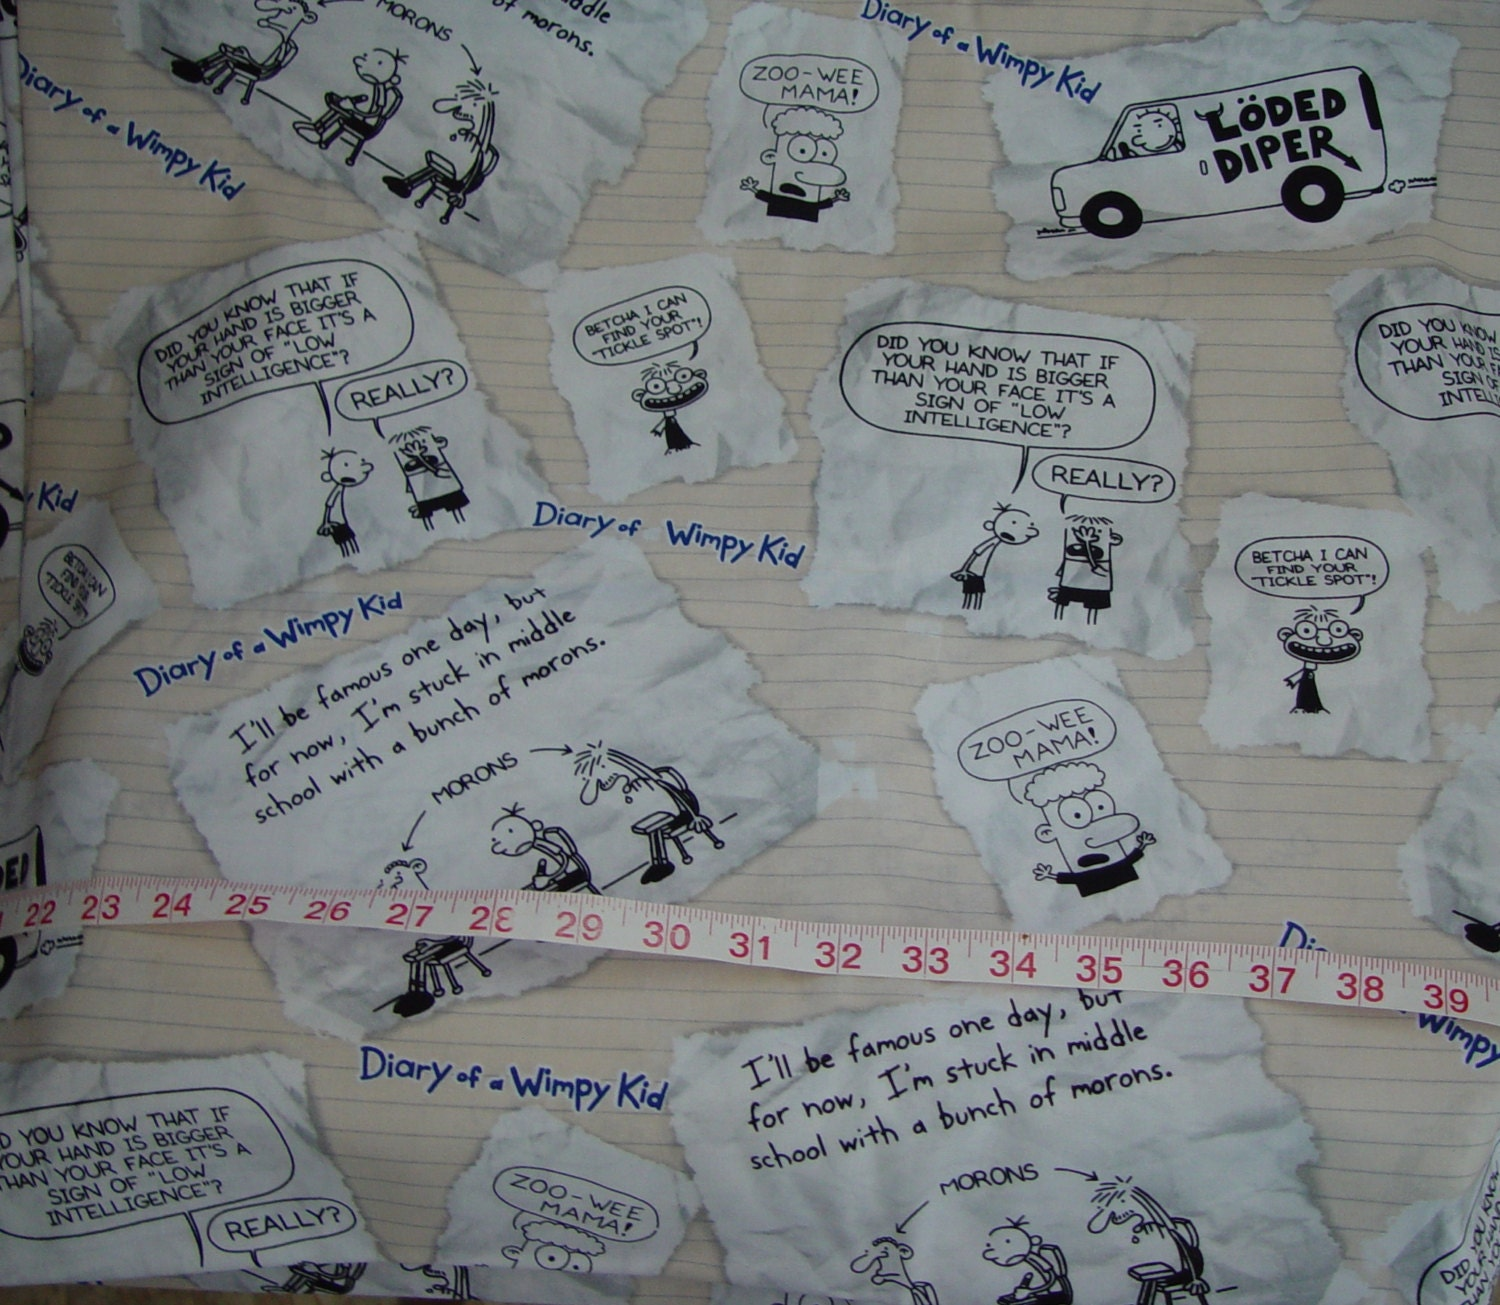 Diary of a wimpy kid notebook fabric almost 2 yards for Diary of a wimpy kid crafts